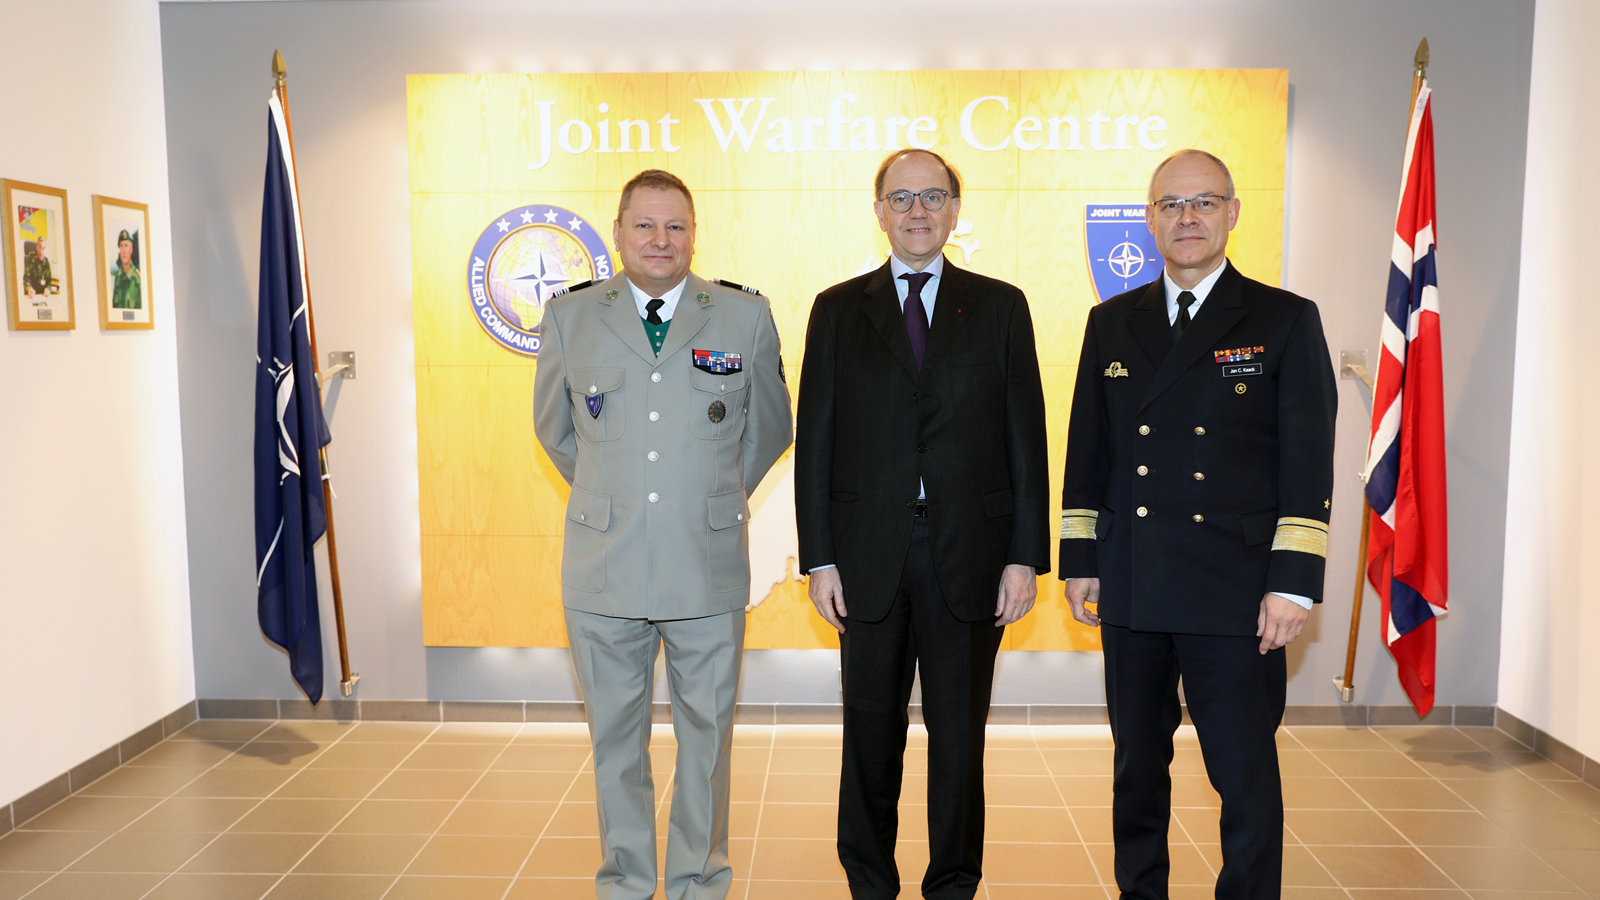 NATO Joint Warfare Centre welcomes the French Ambassador